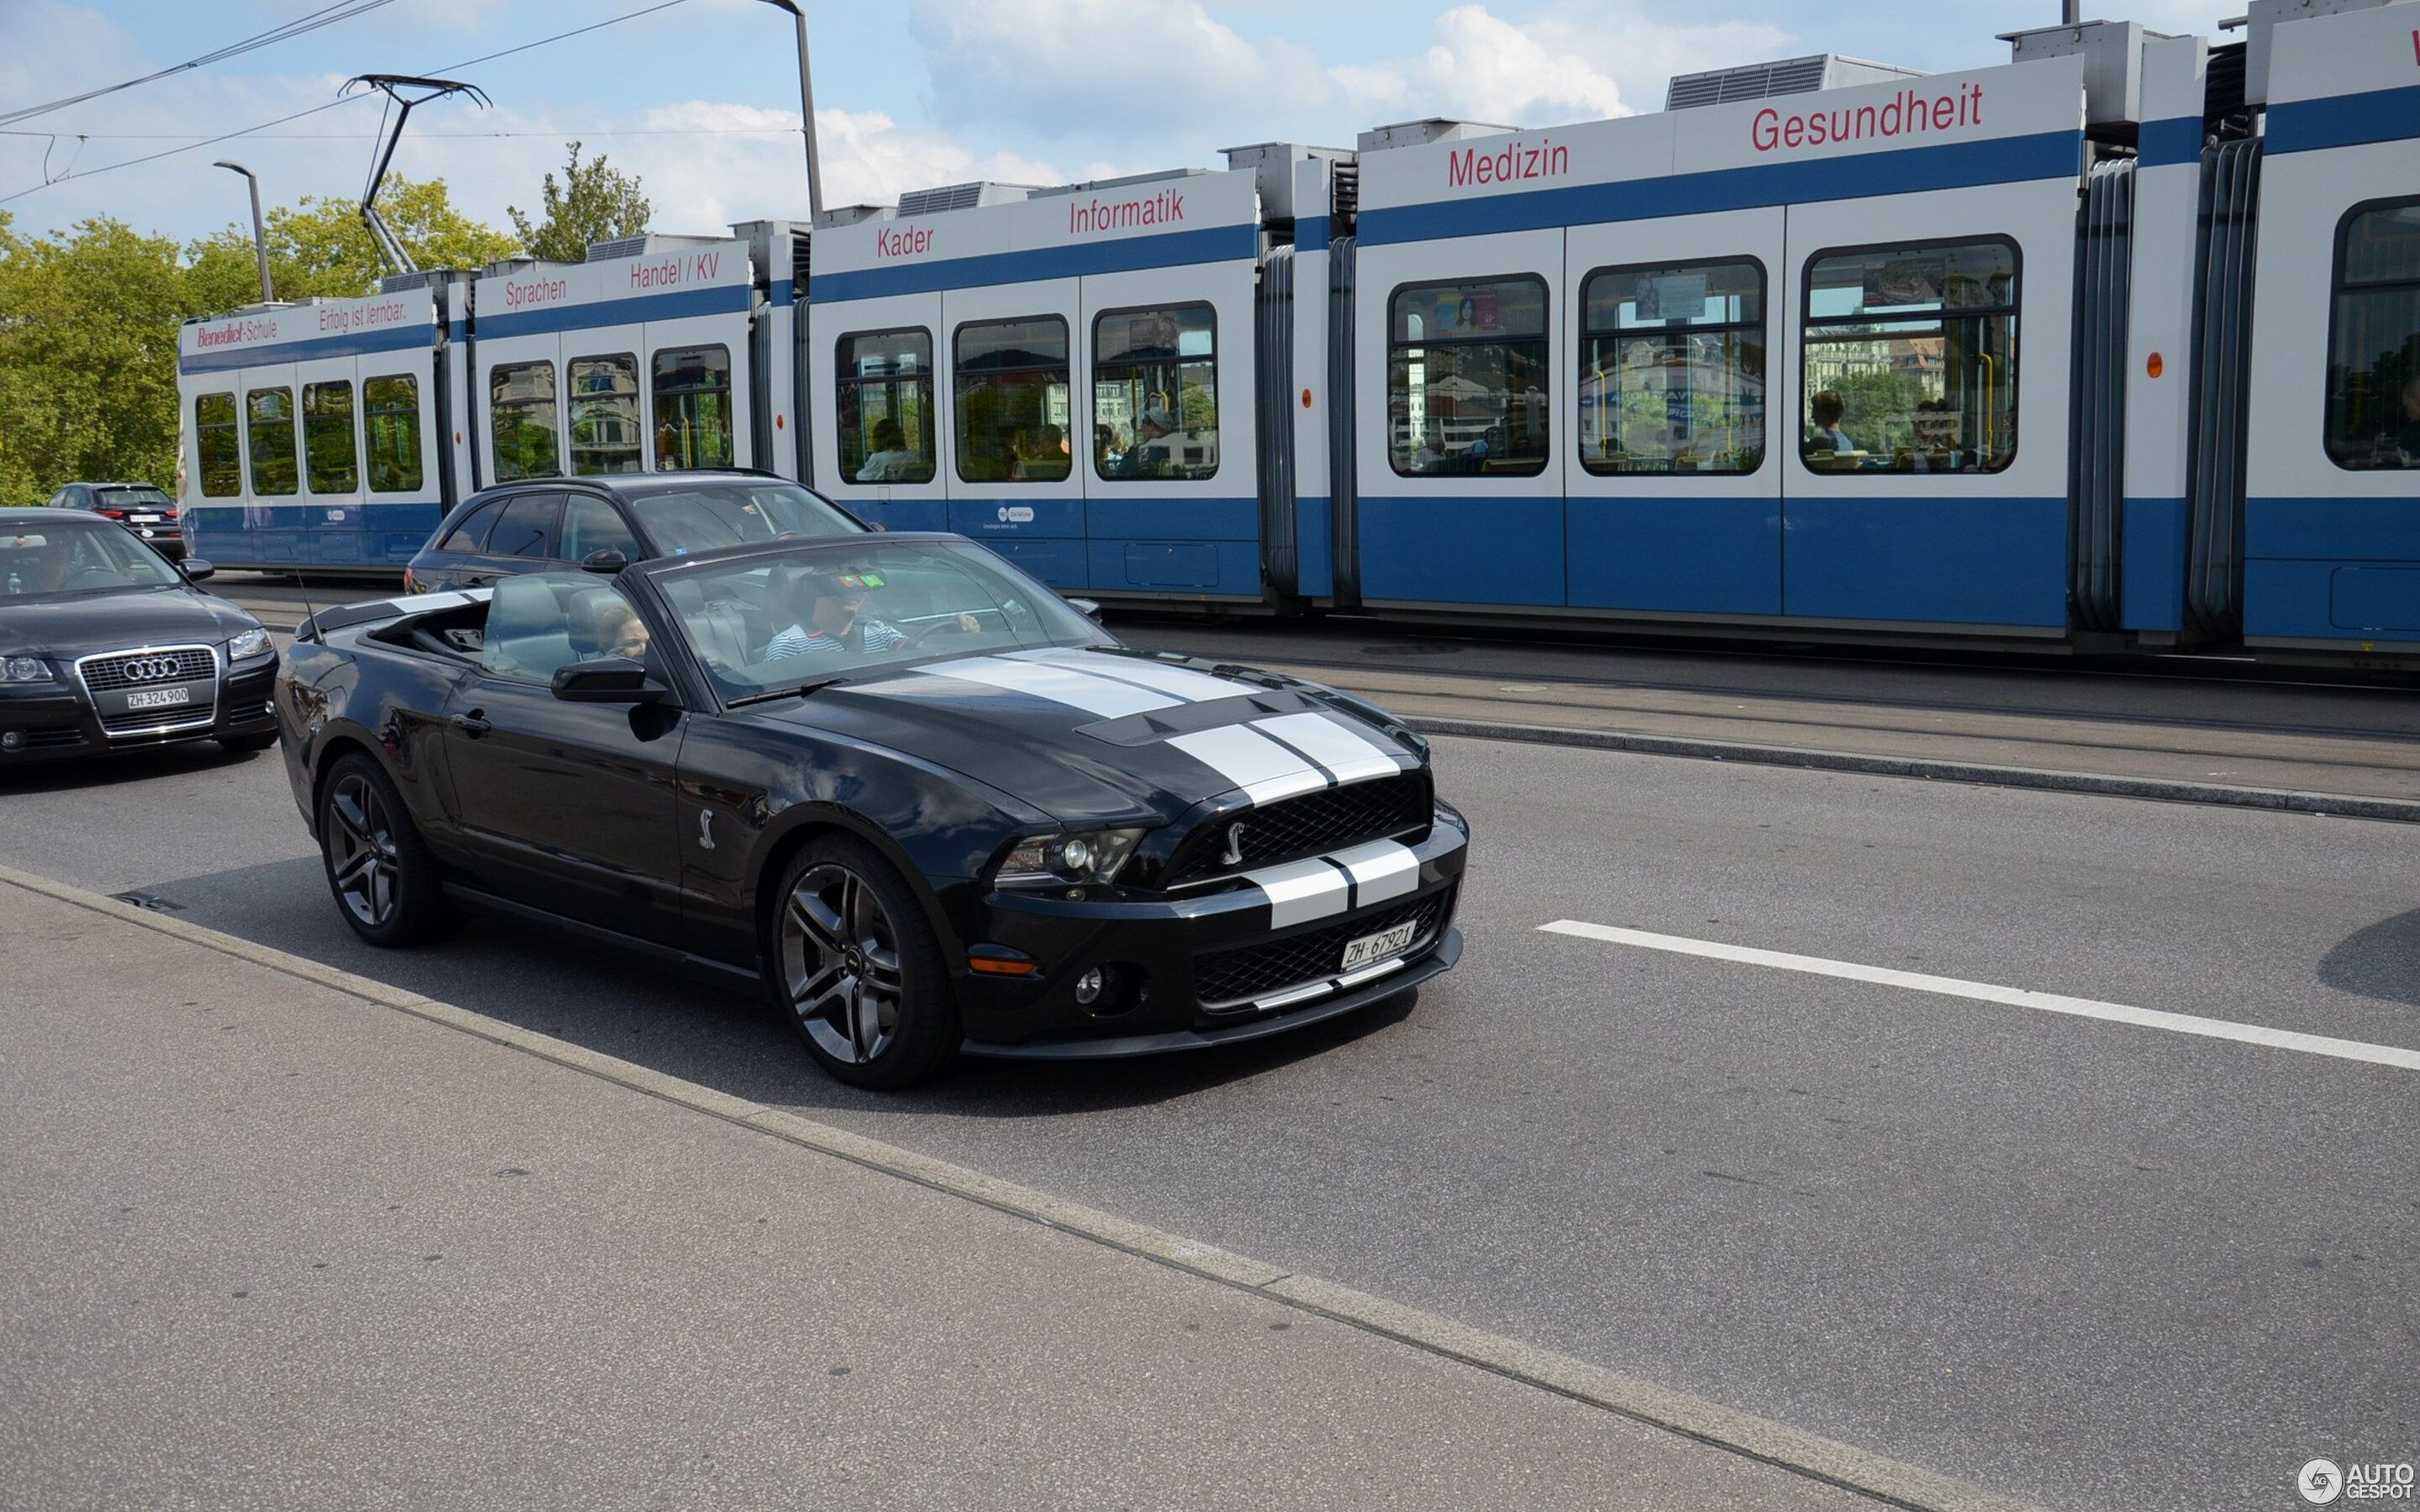 Ford Mustang Shelby GT500 Super Snake Convertible 2010